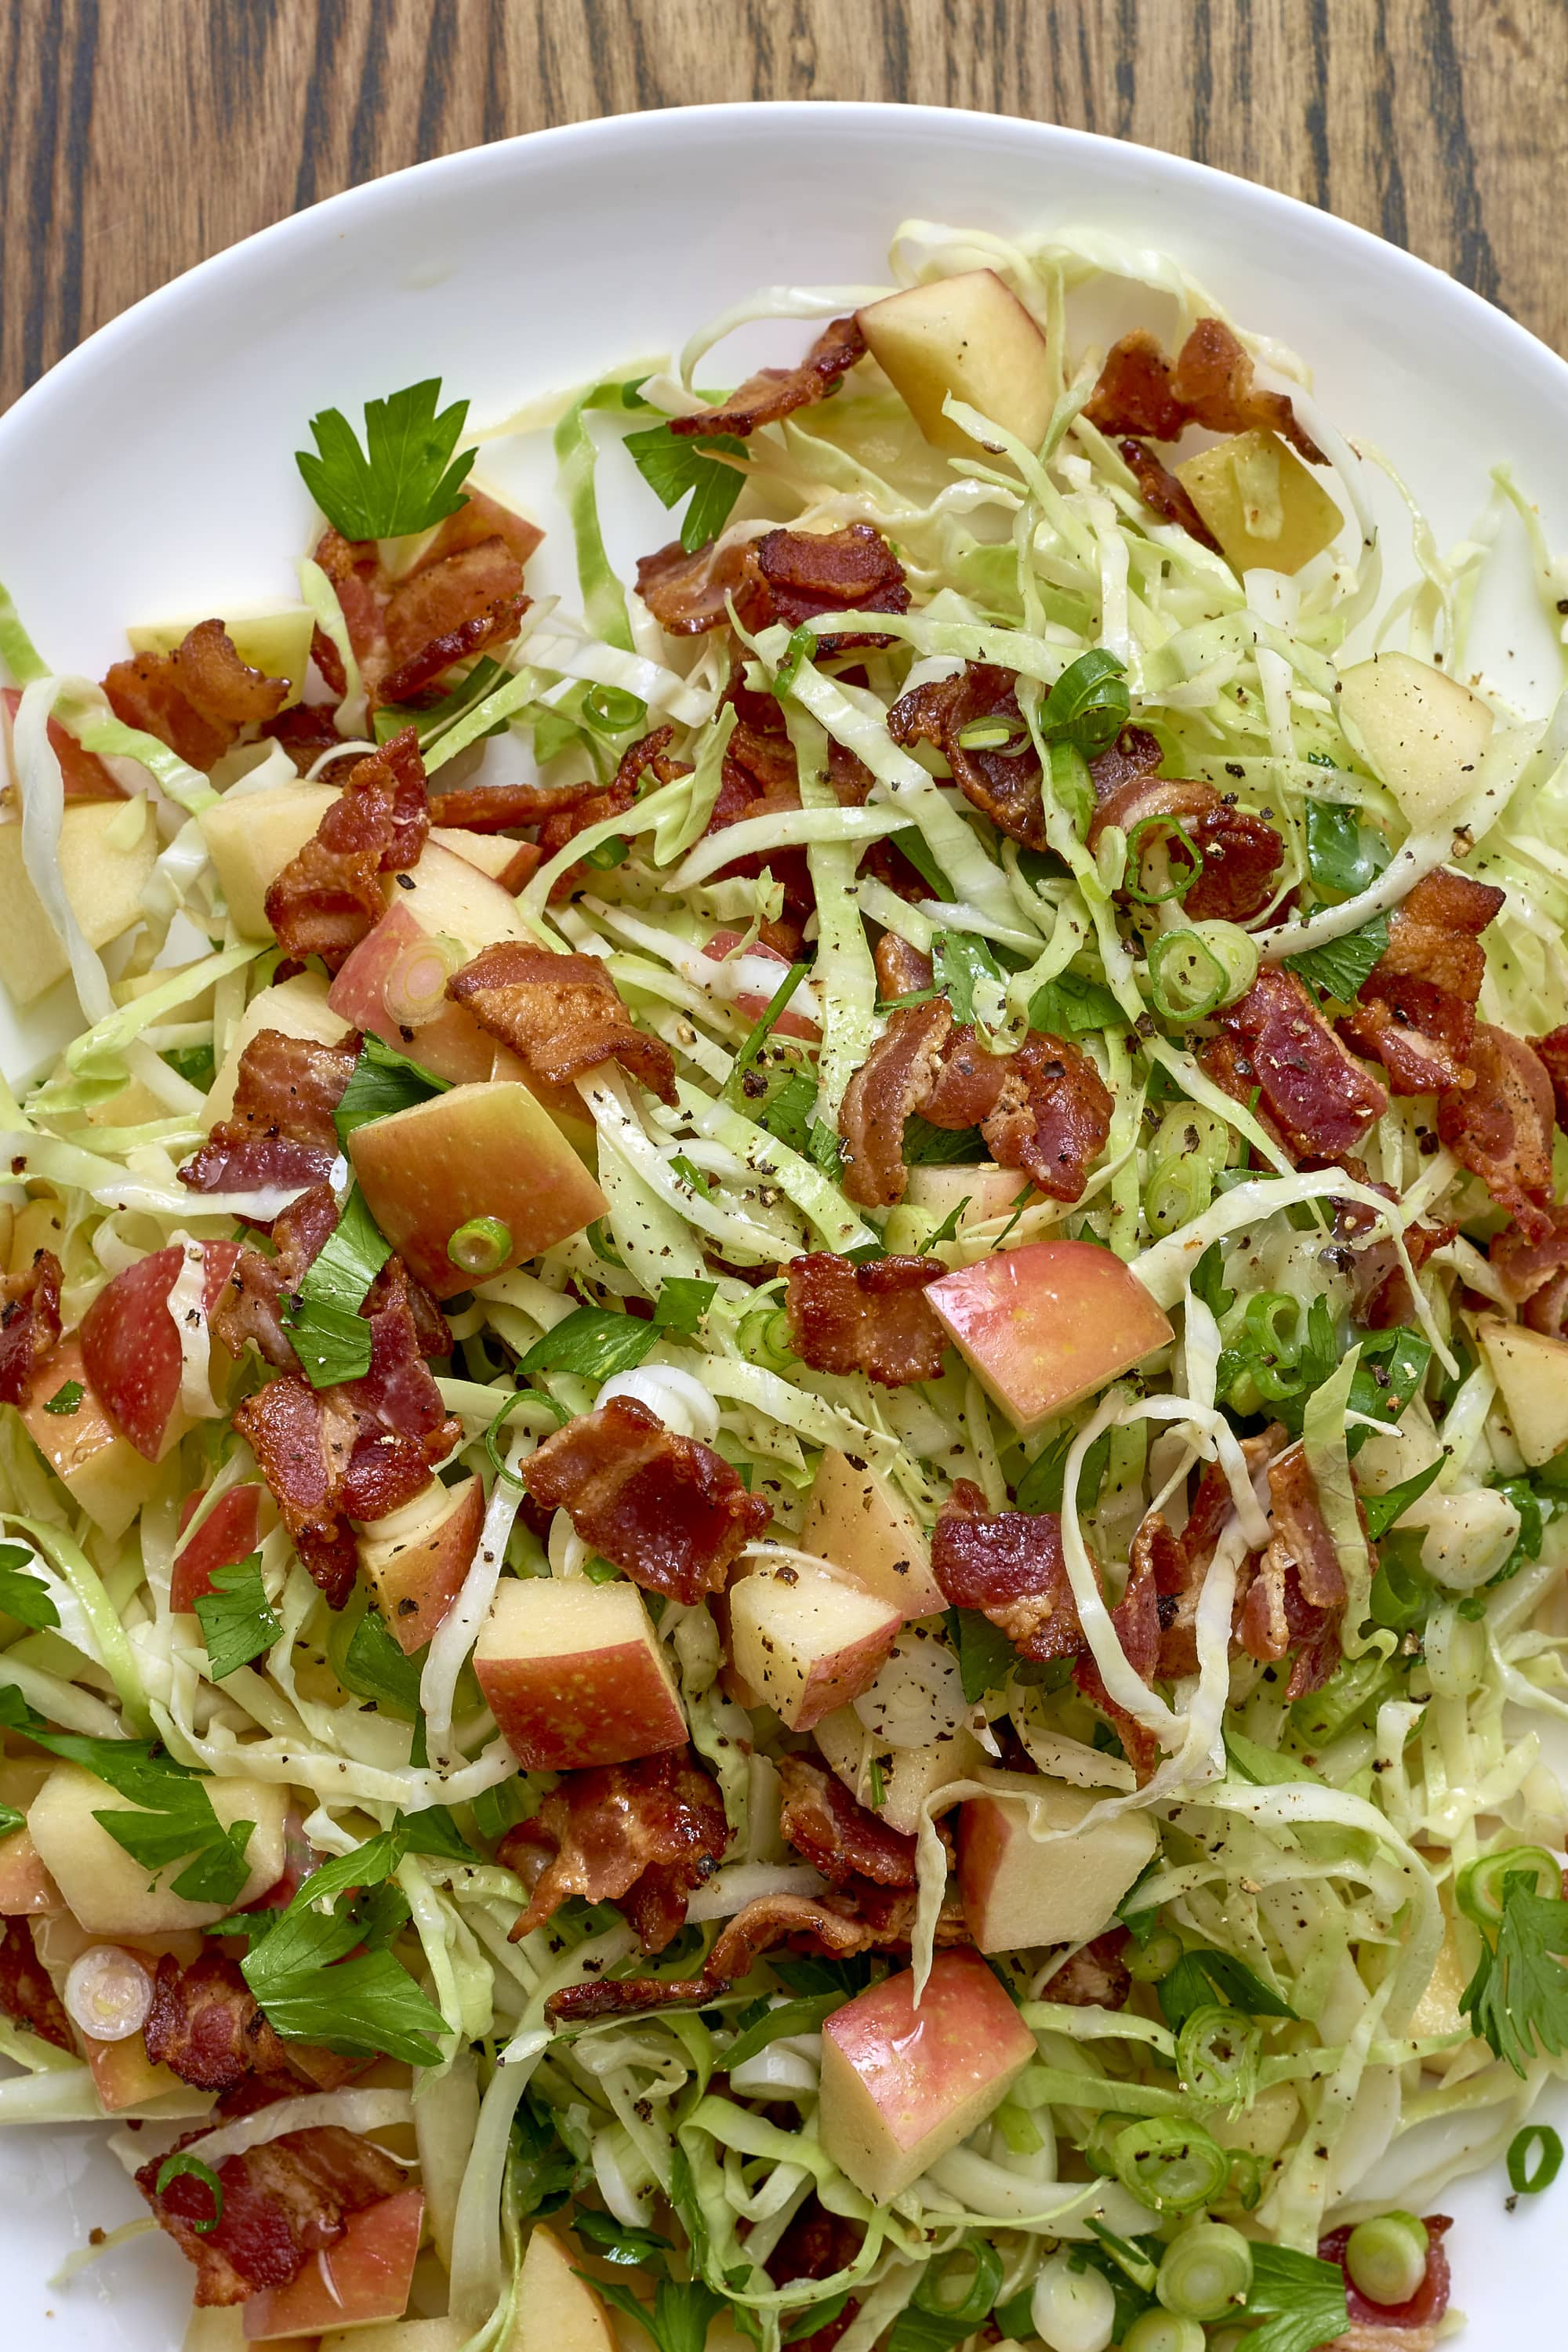 Recipe: Apple-Bacon Slaw